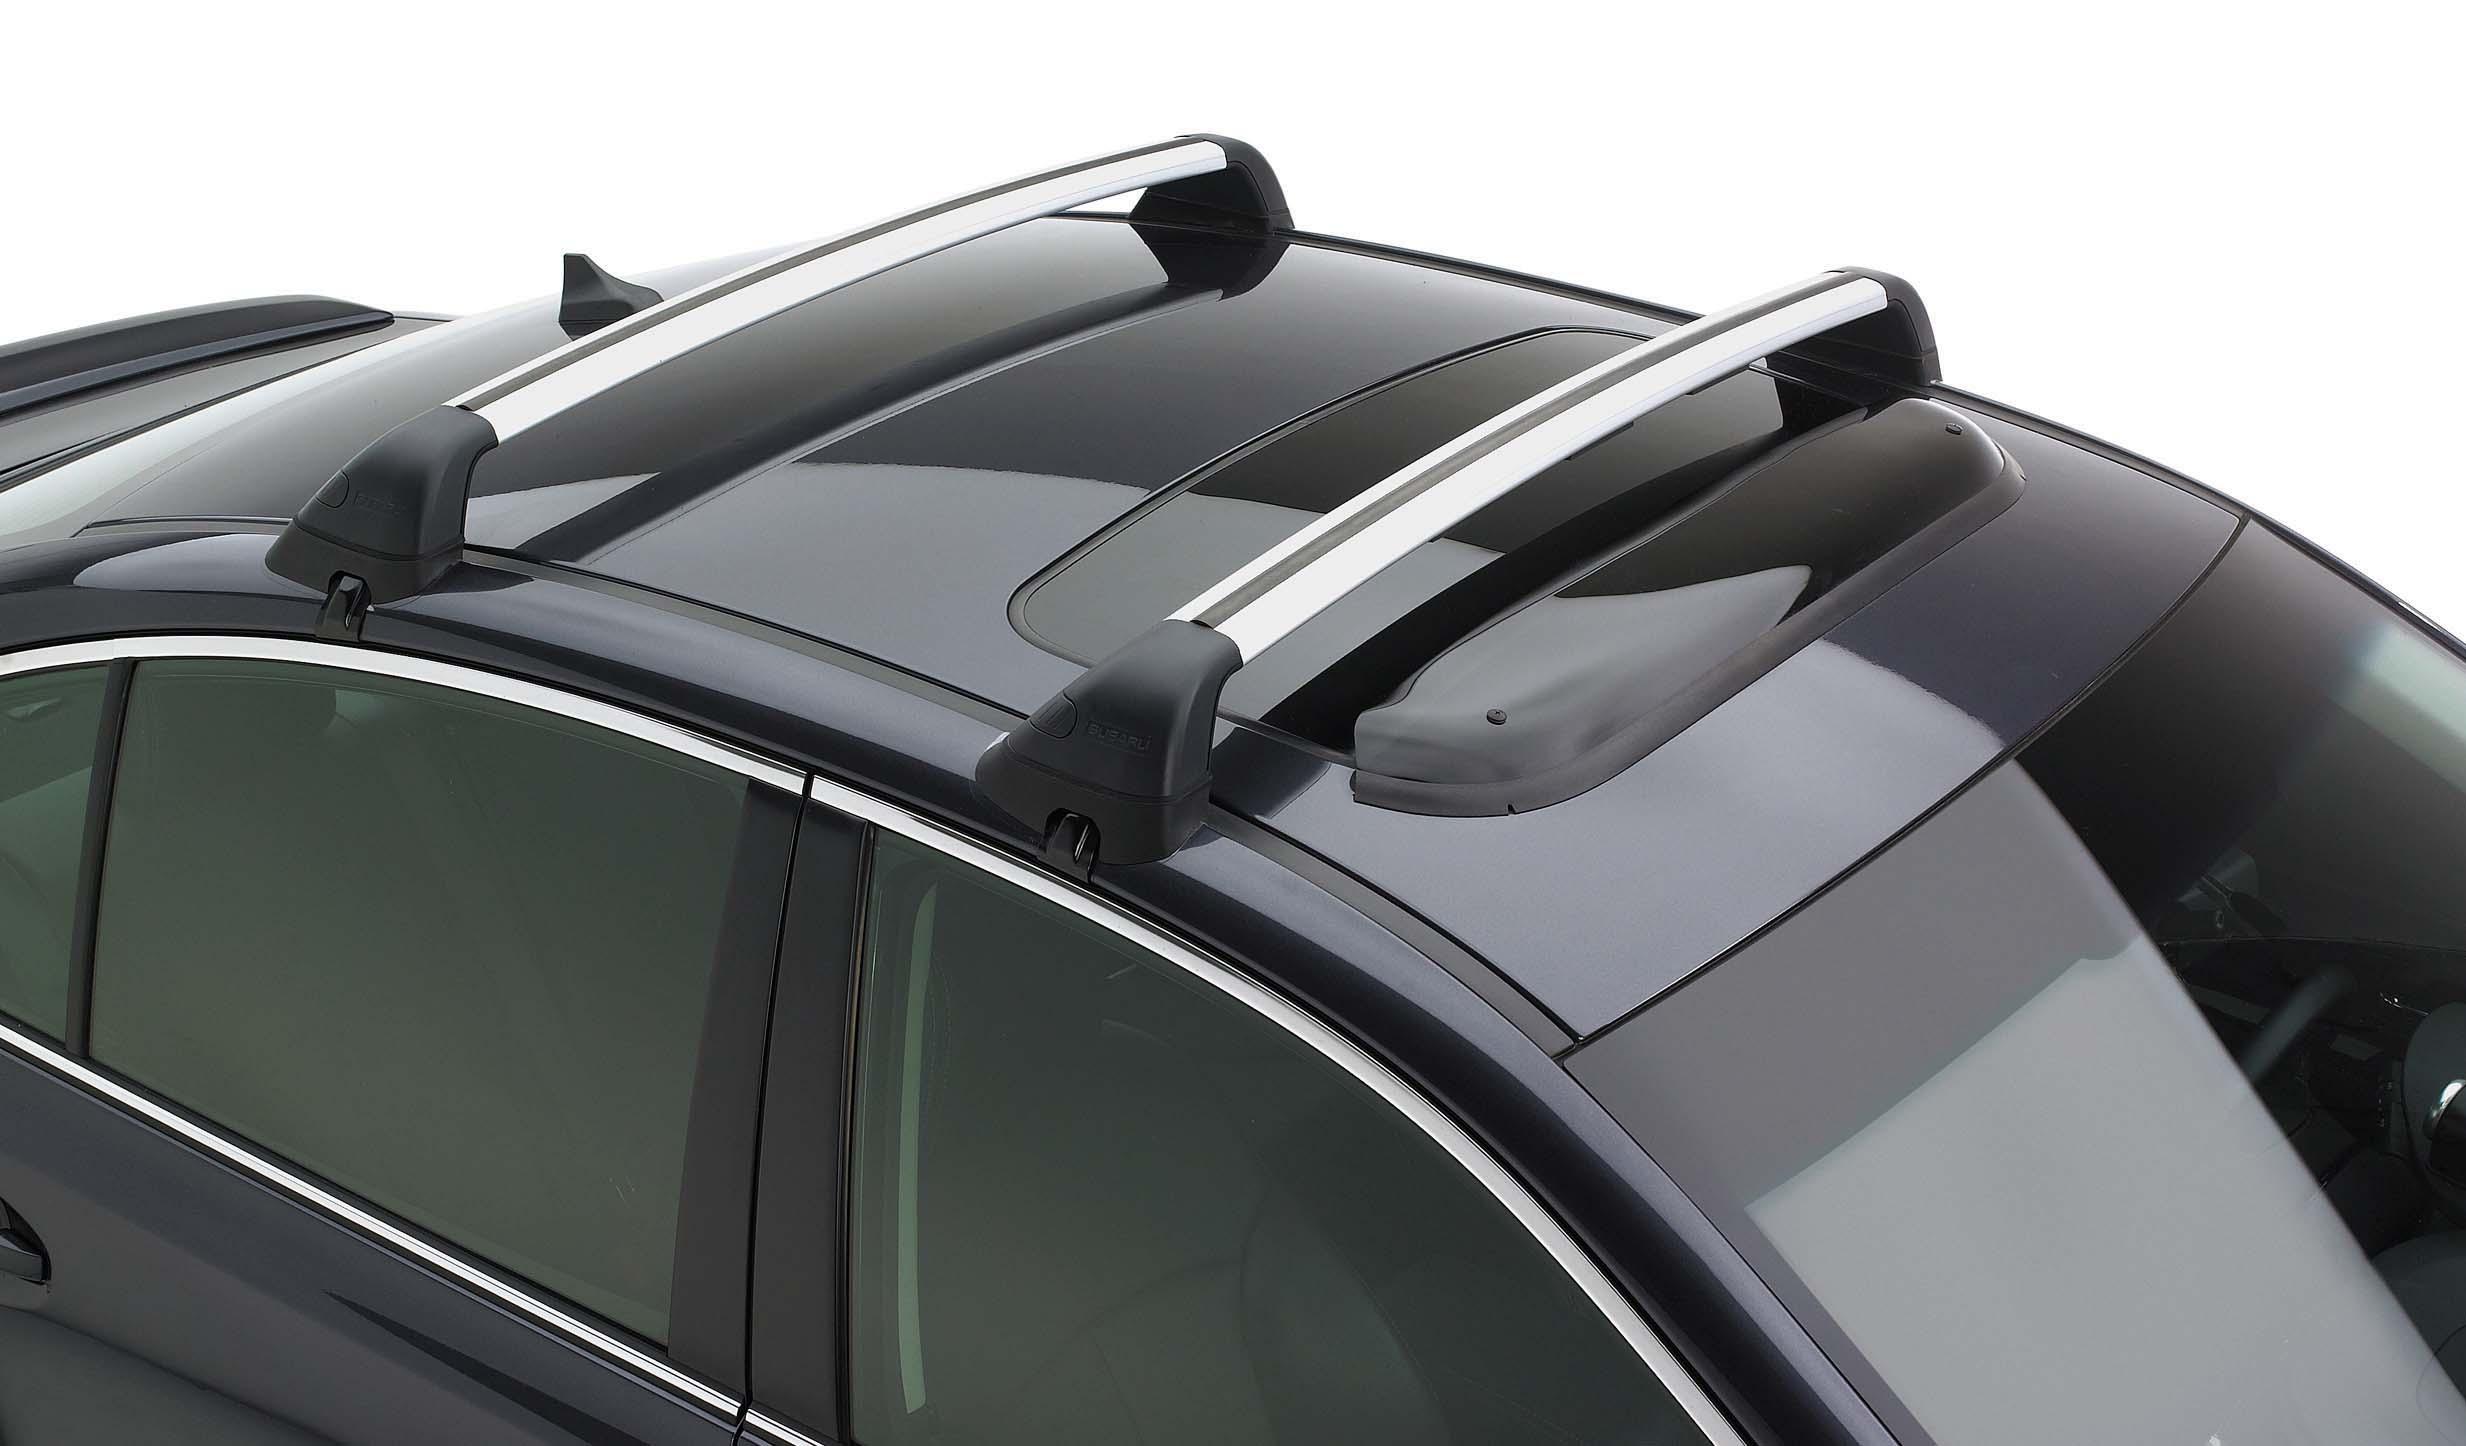 2014 Subaru Impreza Roof Rack Pictures To Pin On Pinterest Pinsdaddy